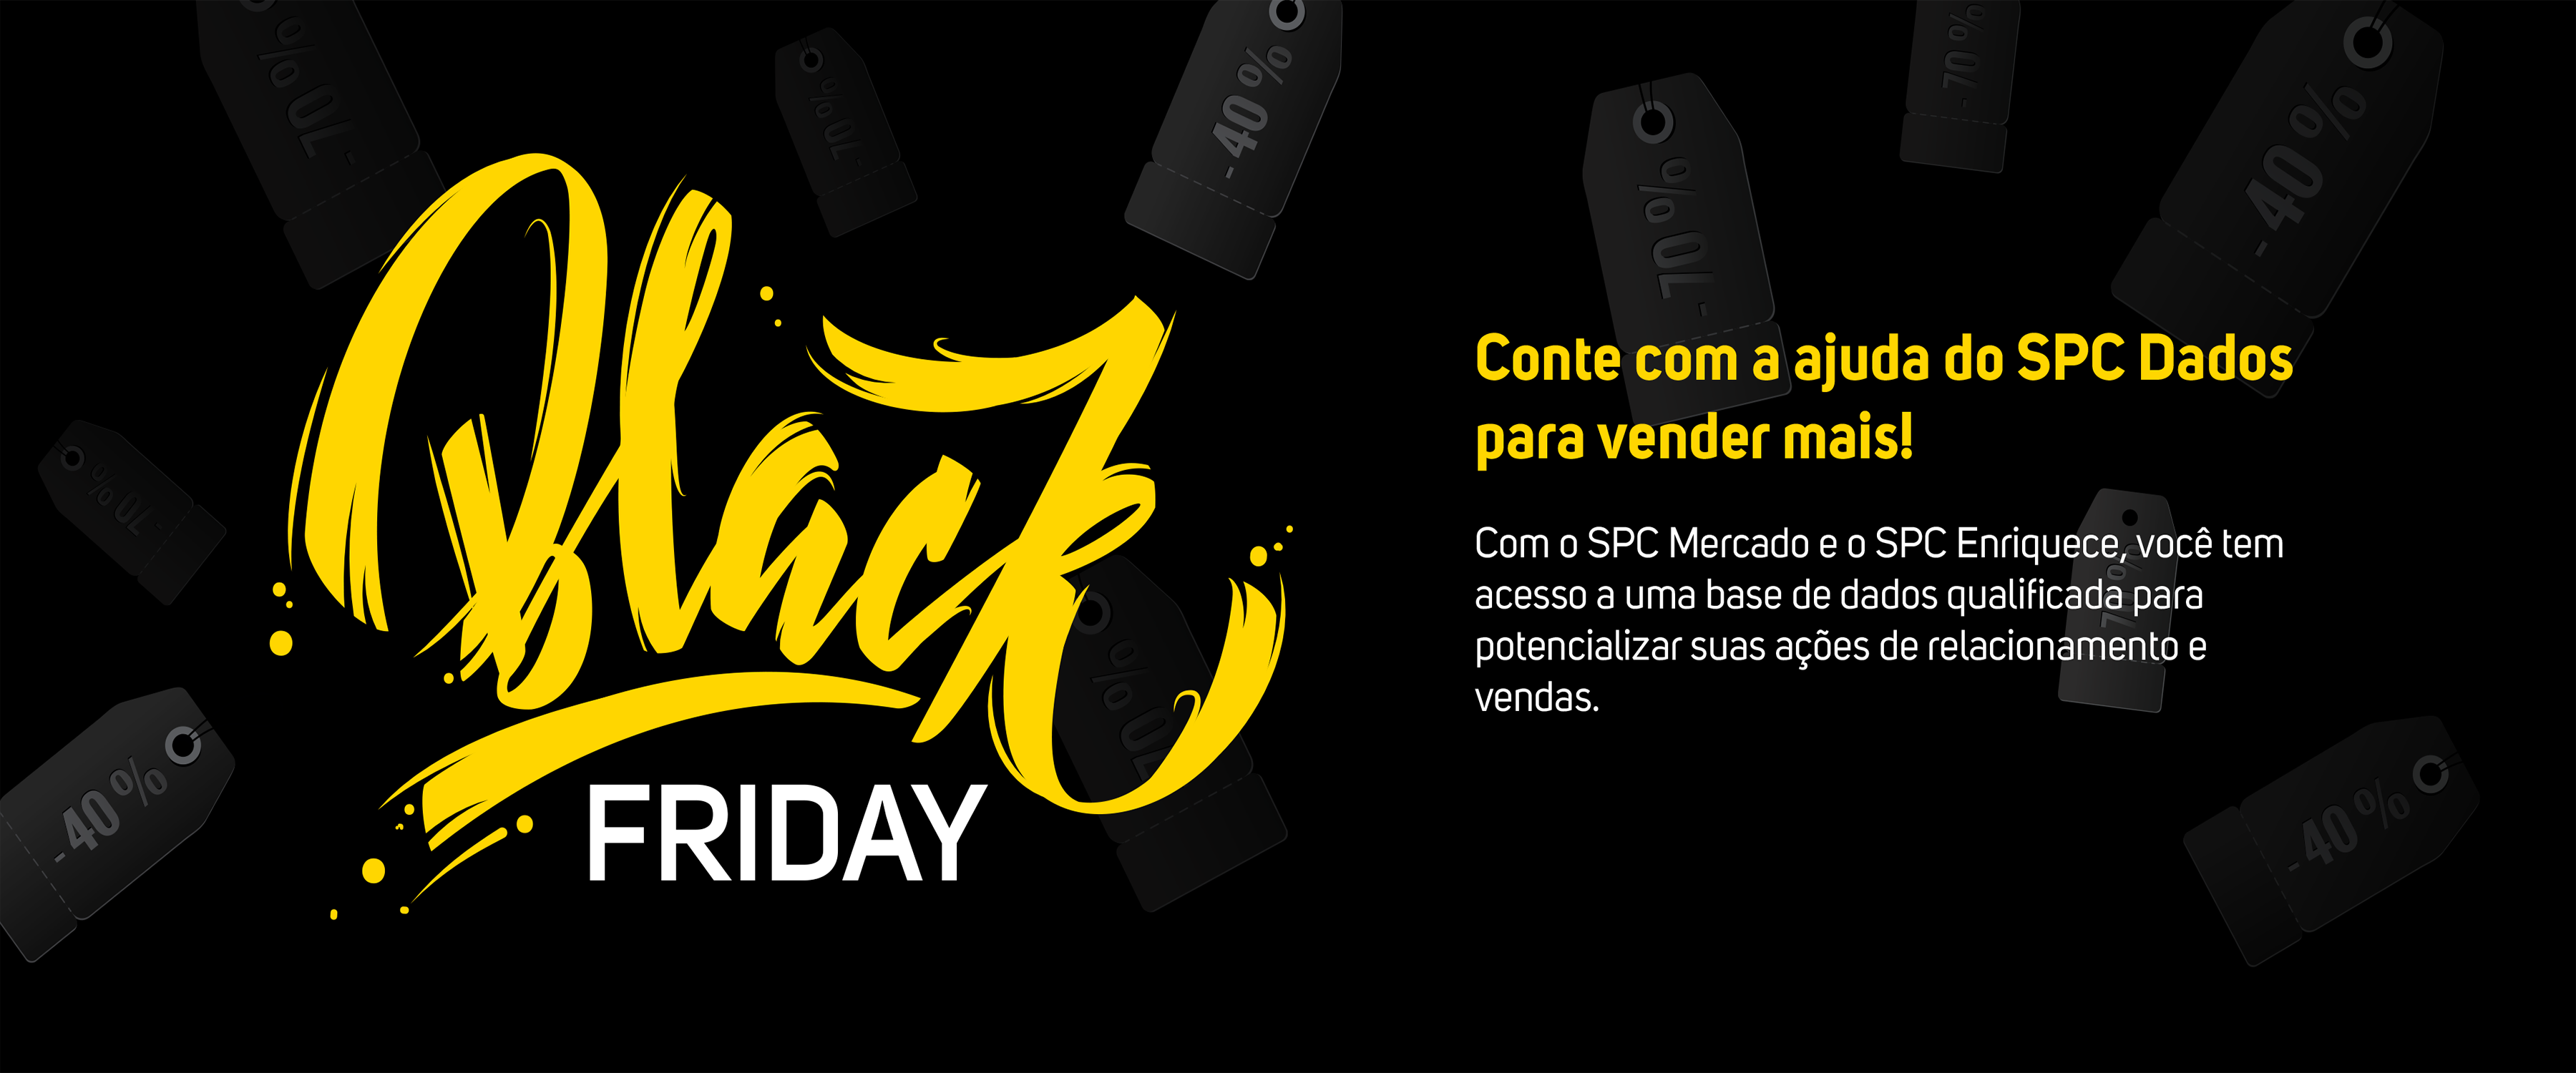 BLACK FRIDAY SPC DADOS